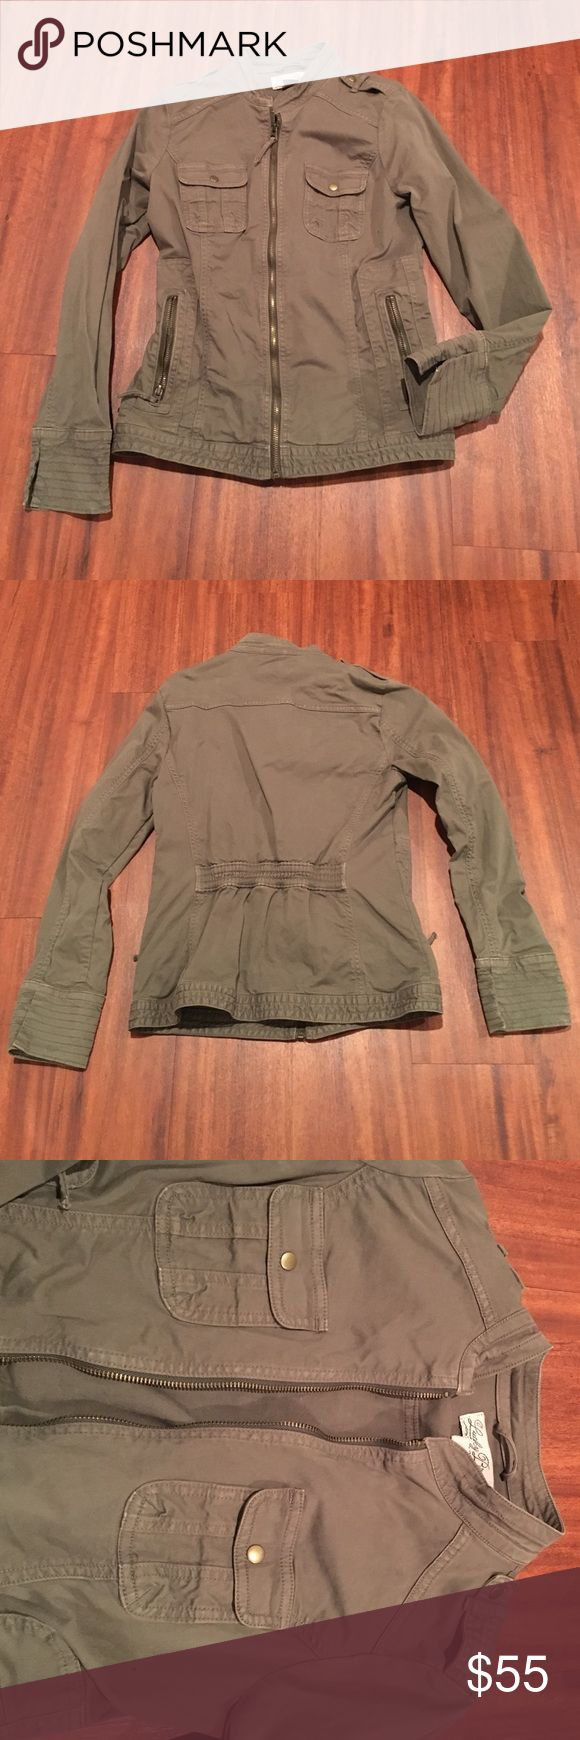 Lucky Brand Olive Green Military Jacket XS This is a Lucky Brand Olive Green military jacket in size XS. Fitted and cinched in the back. Comes from a smoke free, pet free home Lucky Brand Jackets & Coats Utility Jackets